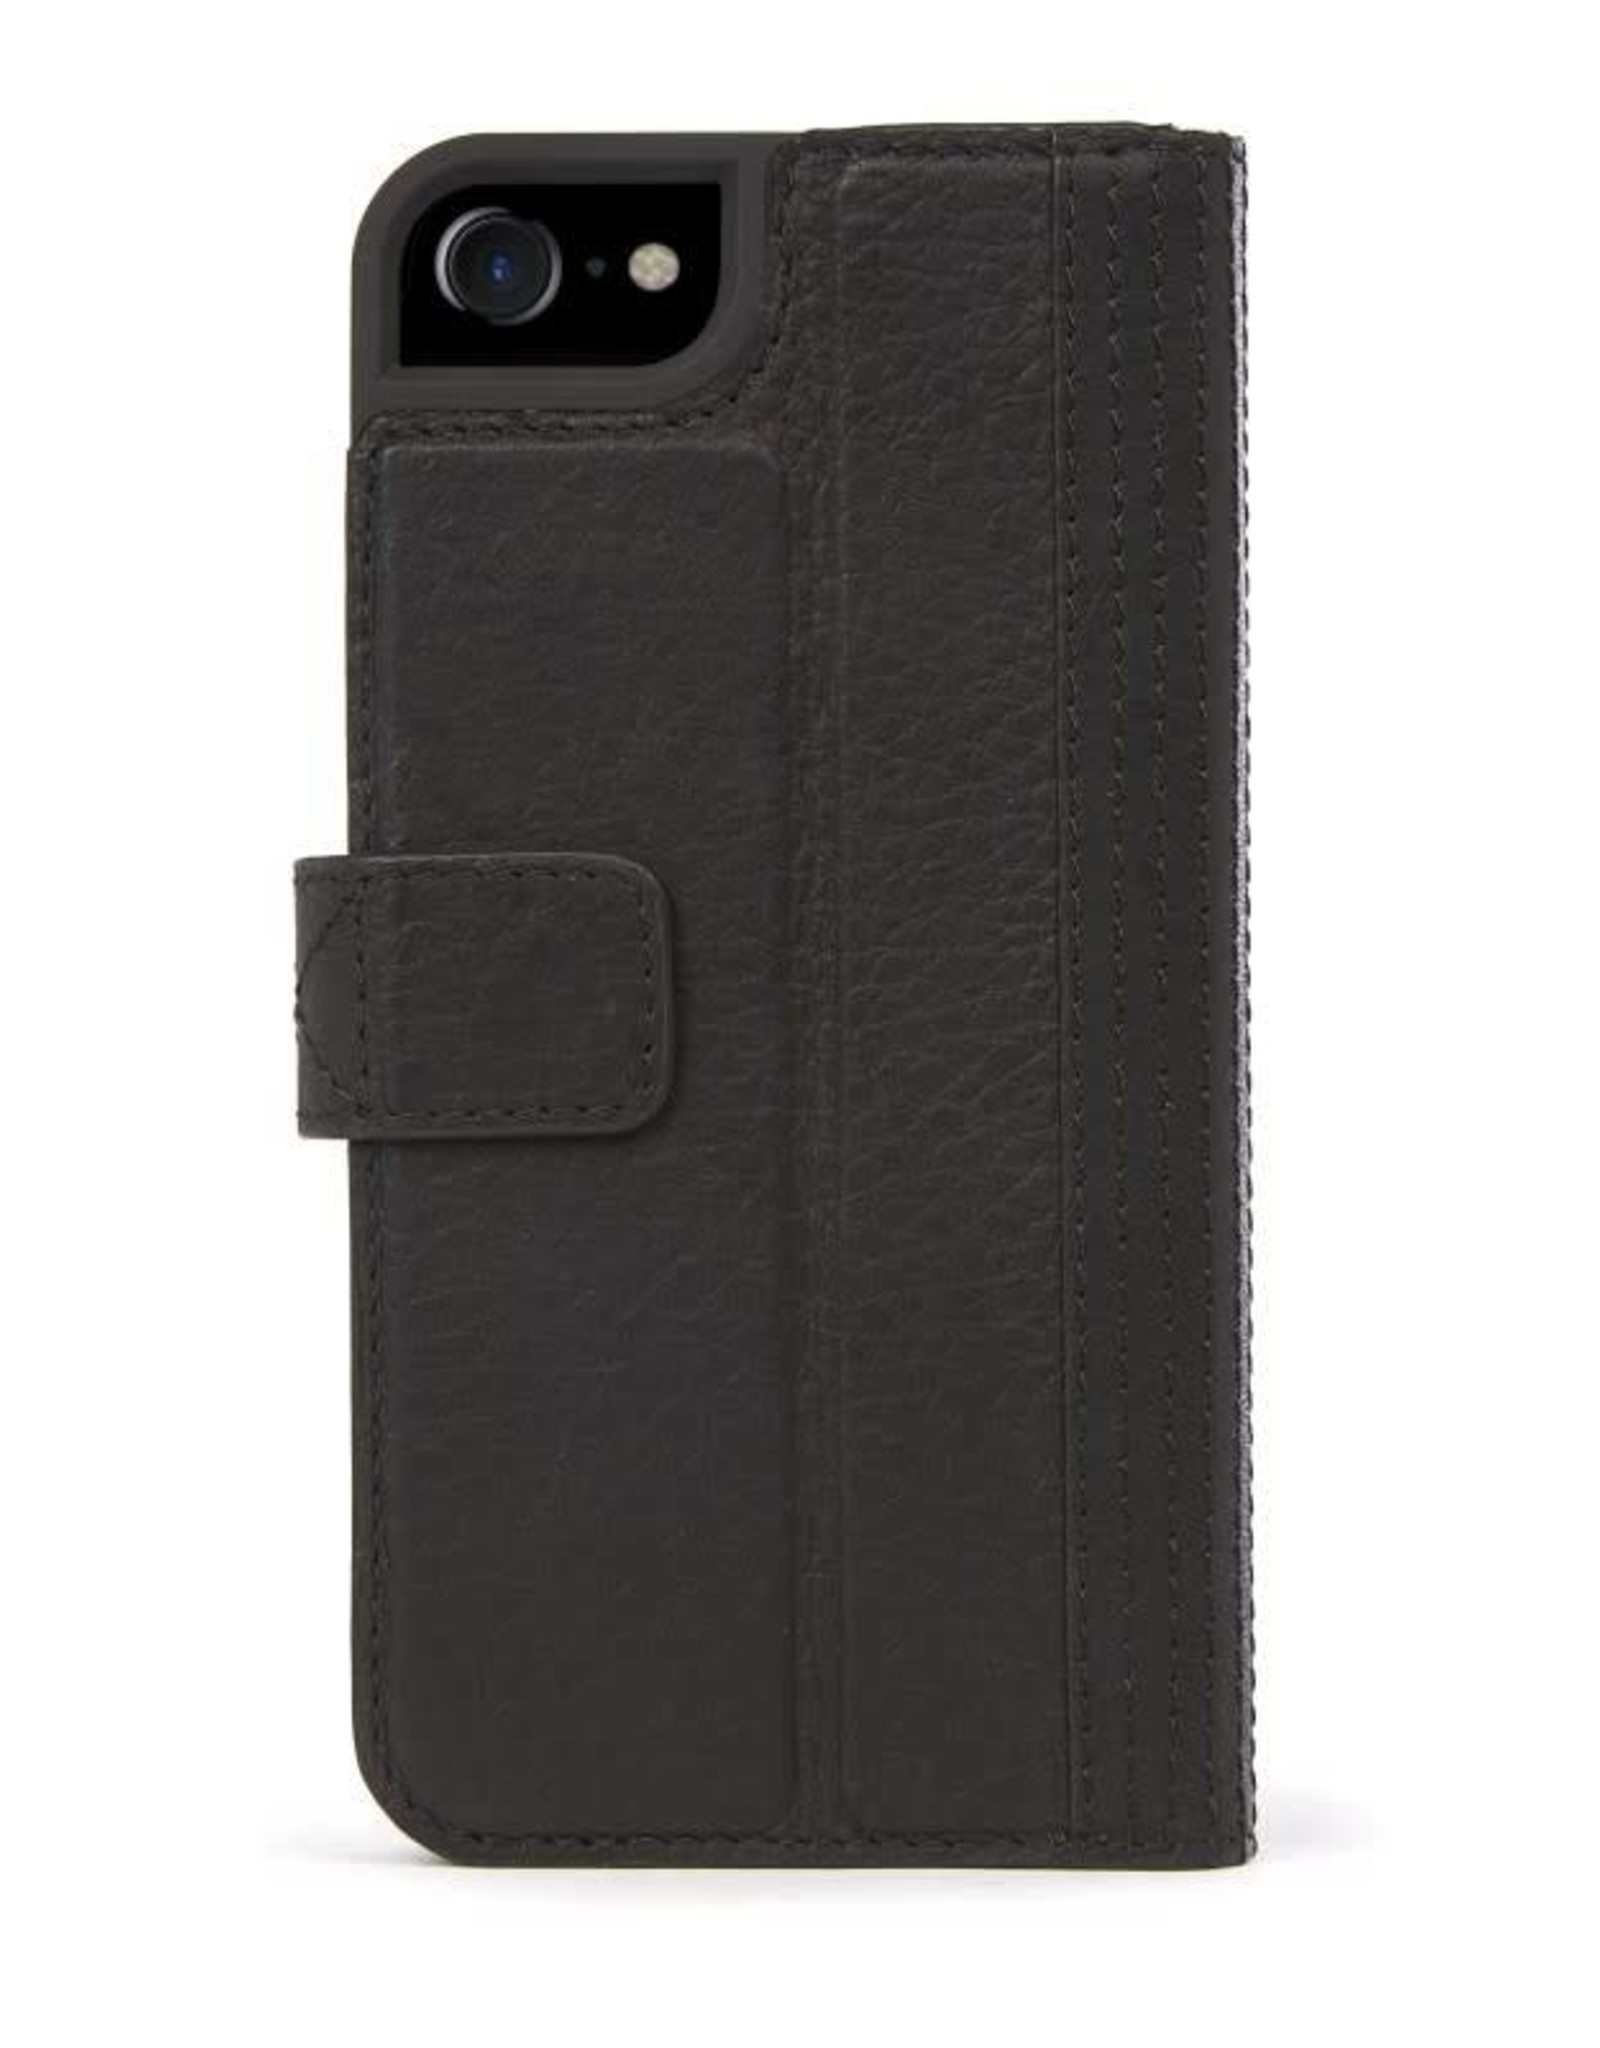 Decoded Leather Wallet Case for iPhone 8/7/6s/6 - Black No Magnet DC-DA6IPO7CW3BK